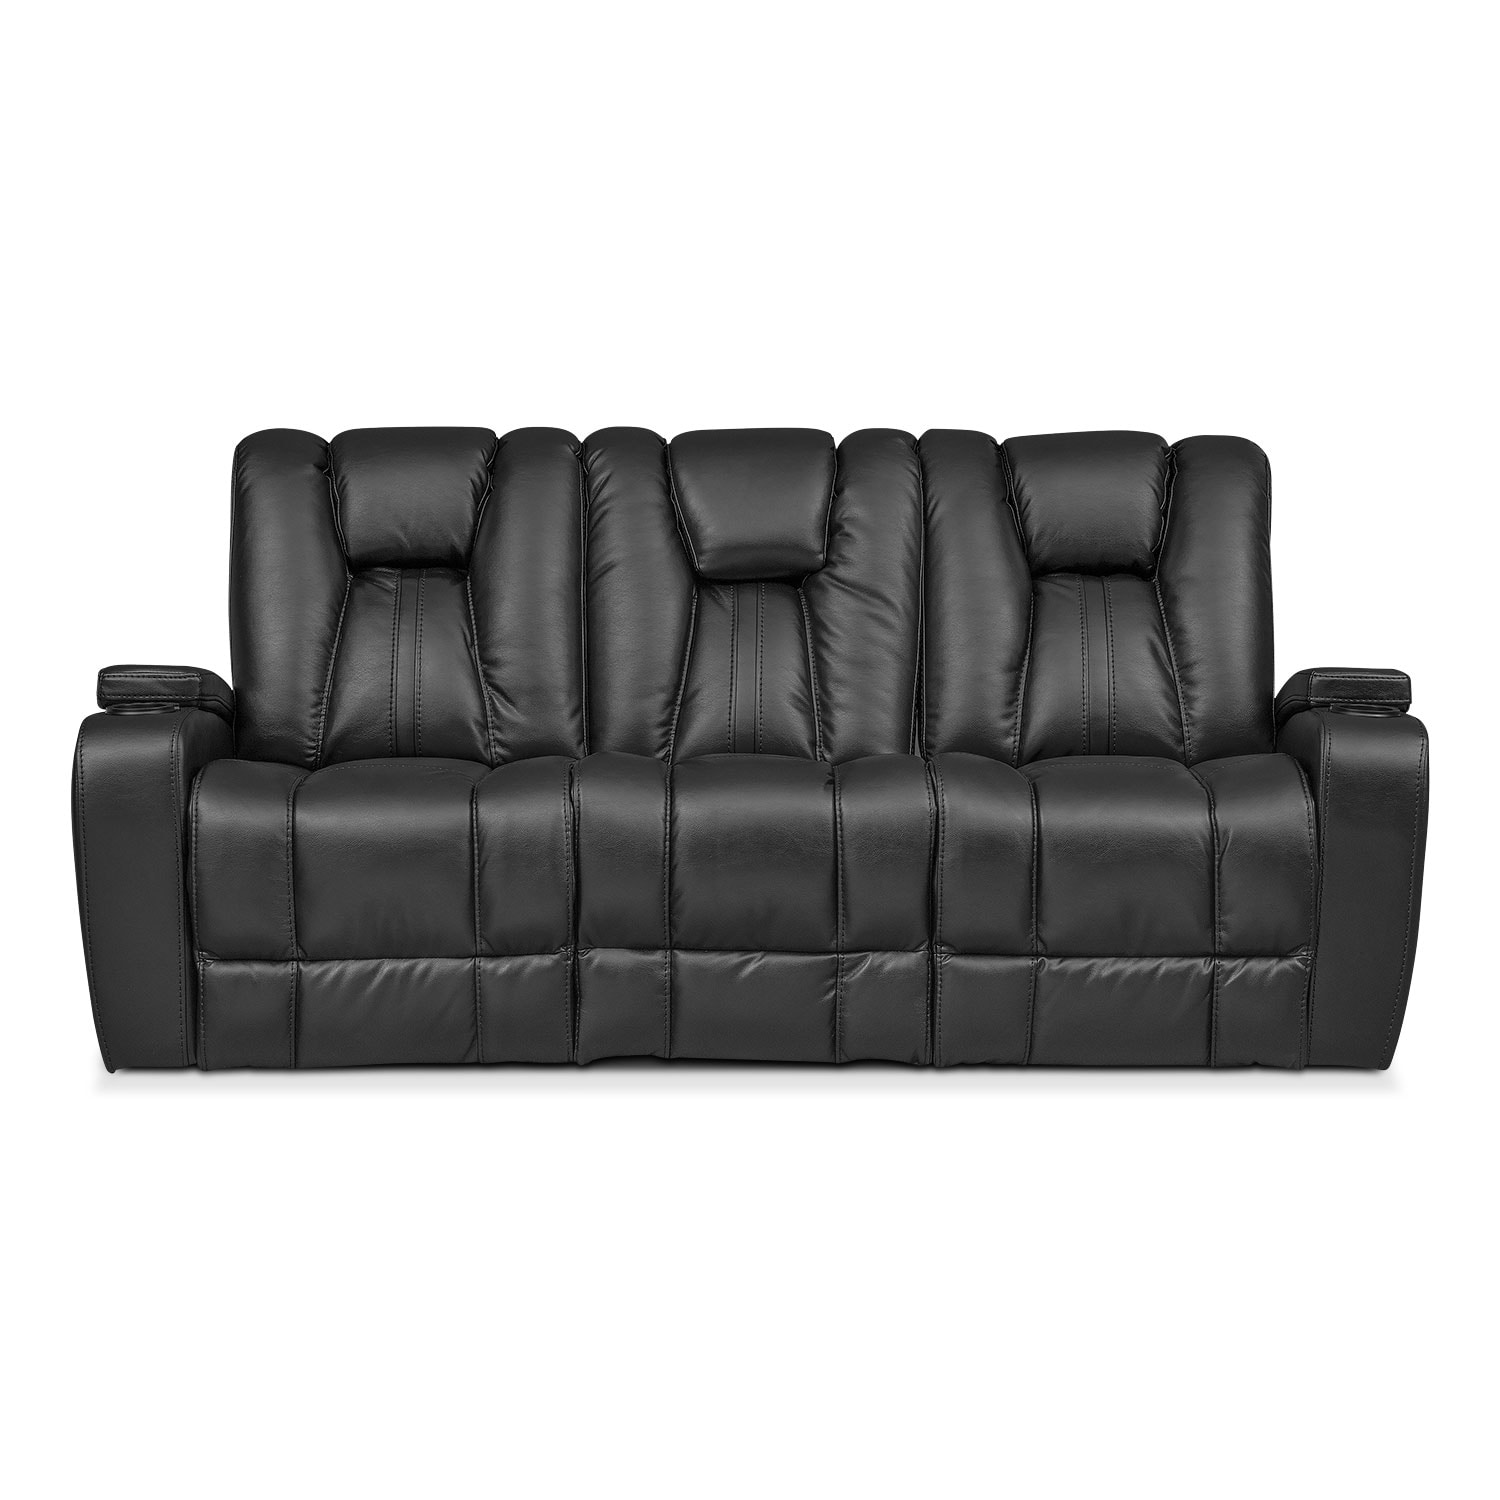 Black Leather Recliner Sofas Pulsar Dual Reclining Sofa Black American Signature Thesofa